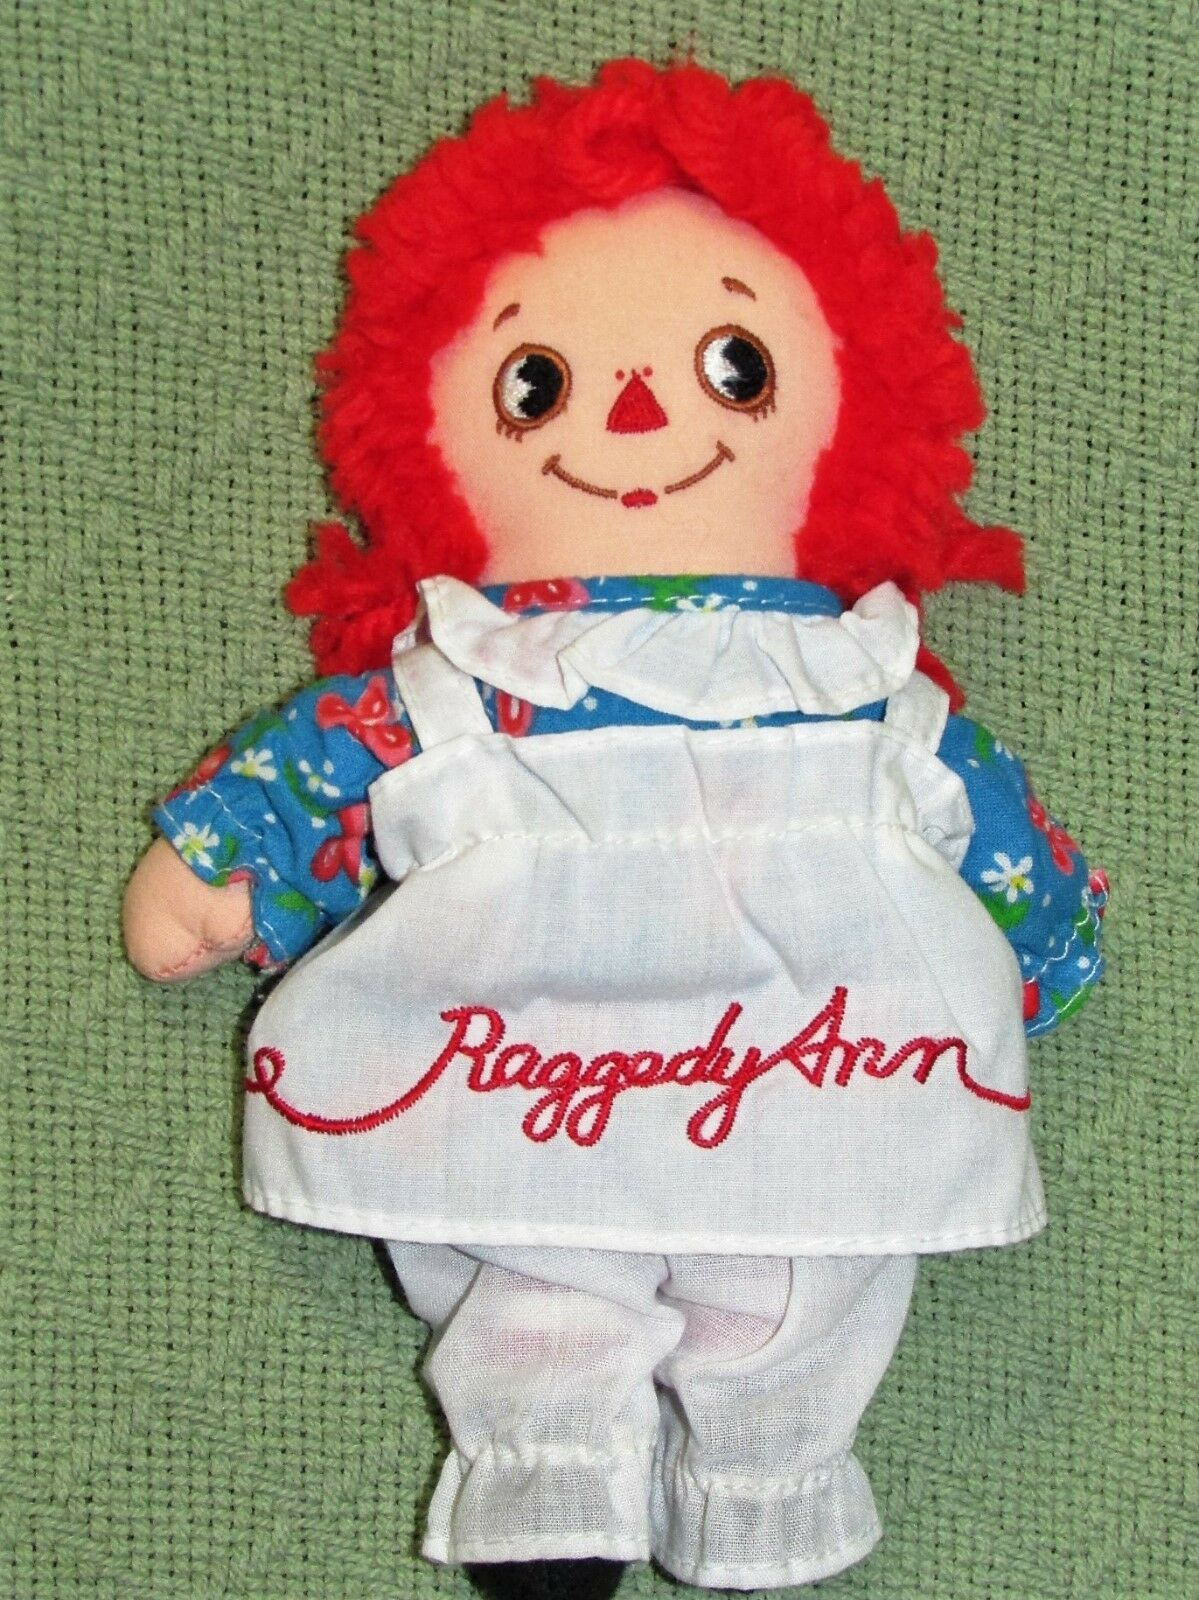 """8"""" KNICKERBOCKER RAGGEDY ANN ANDY Vintage Applause Dolls Embroidered Eyes TAIWAN image 5"""